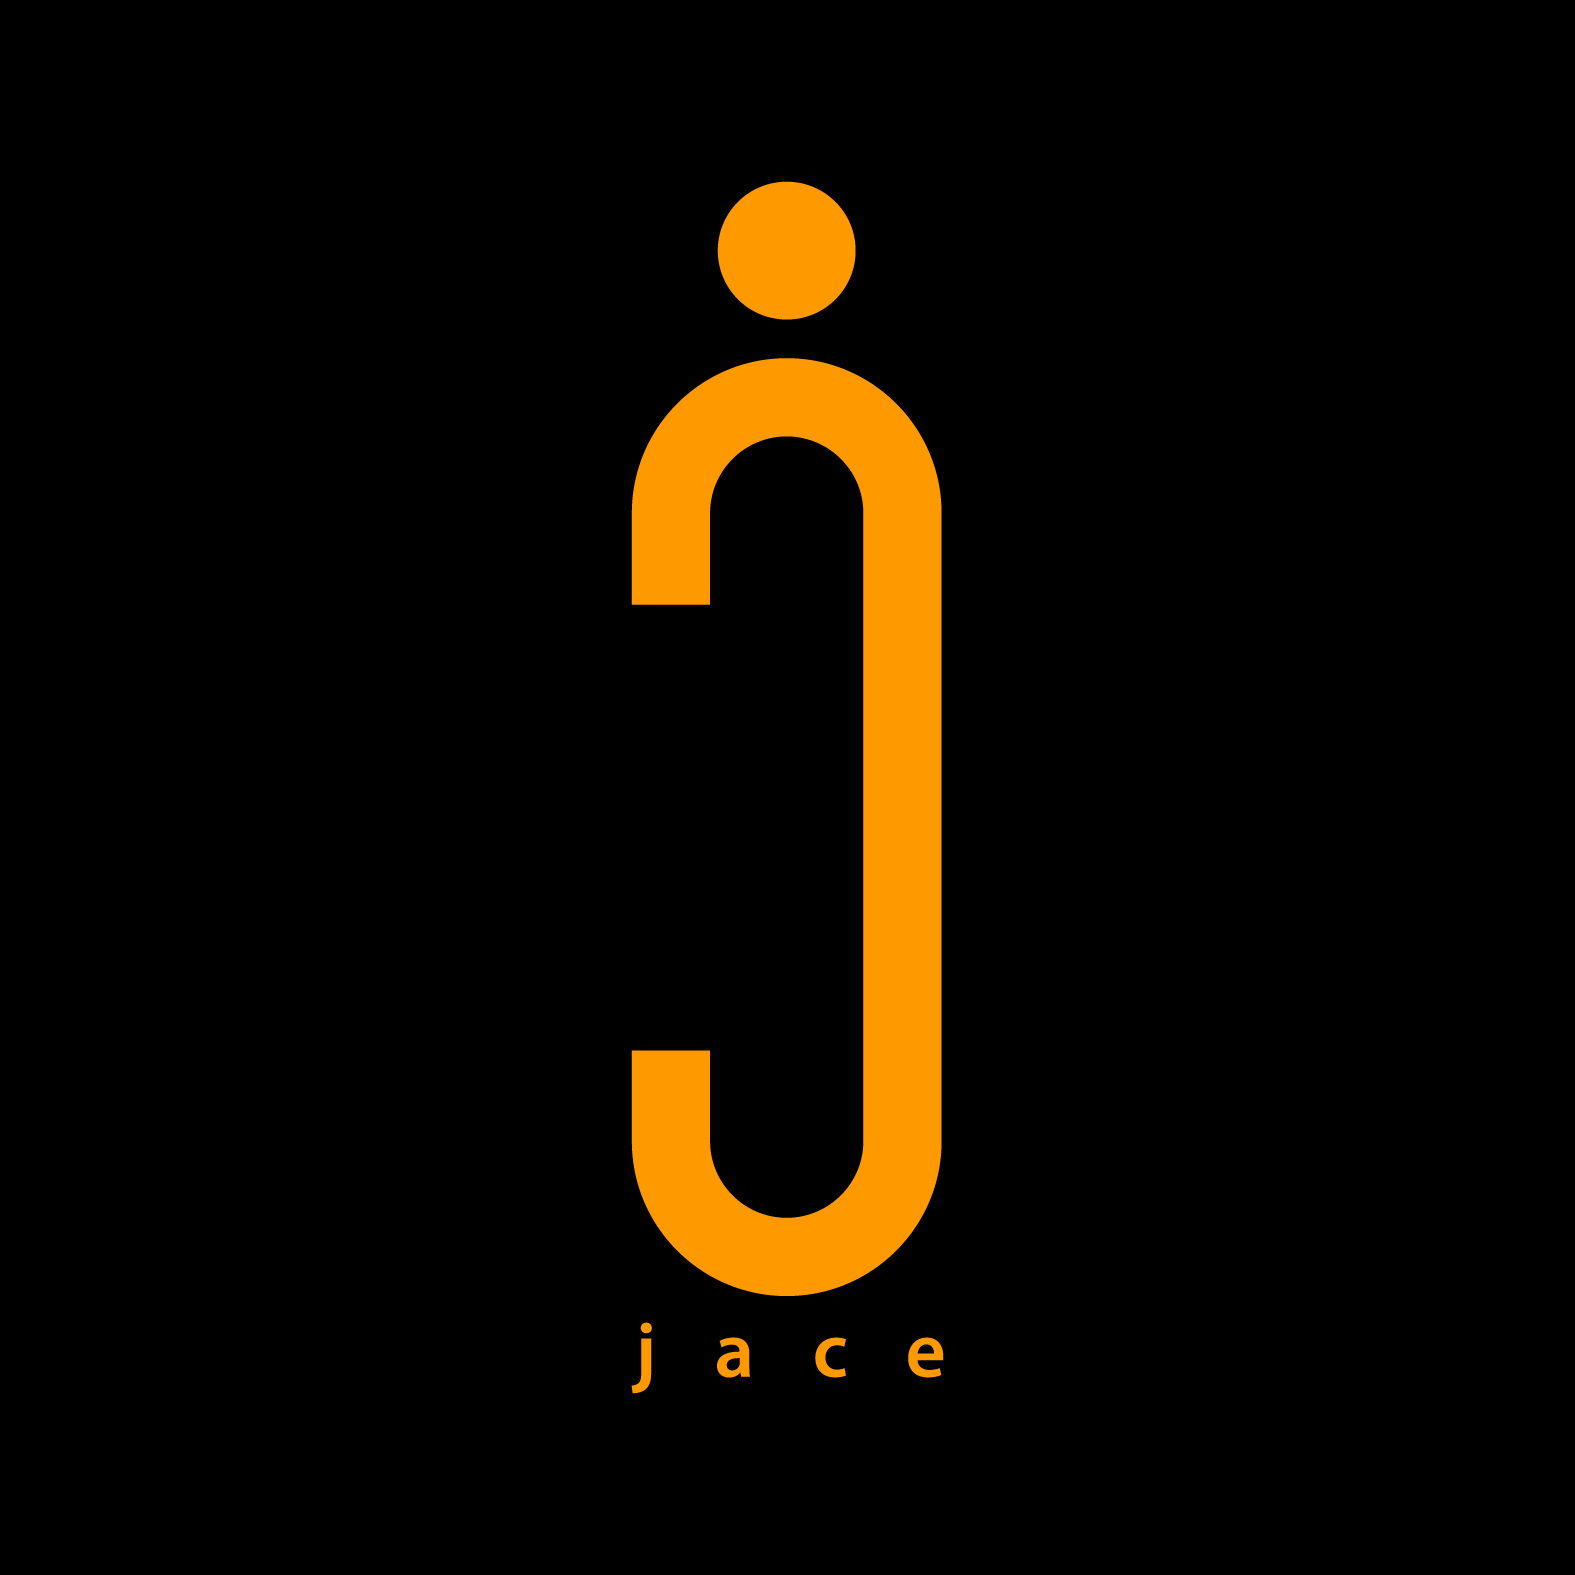 Graphic designer | Jace Design